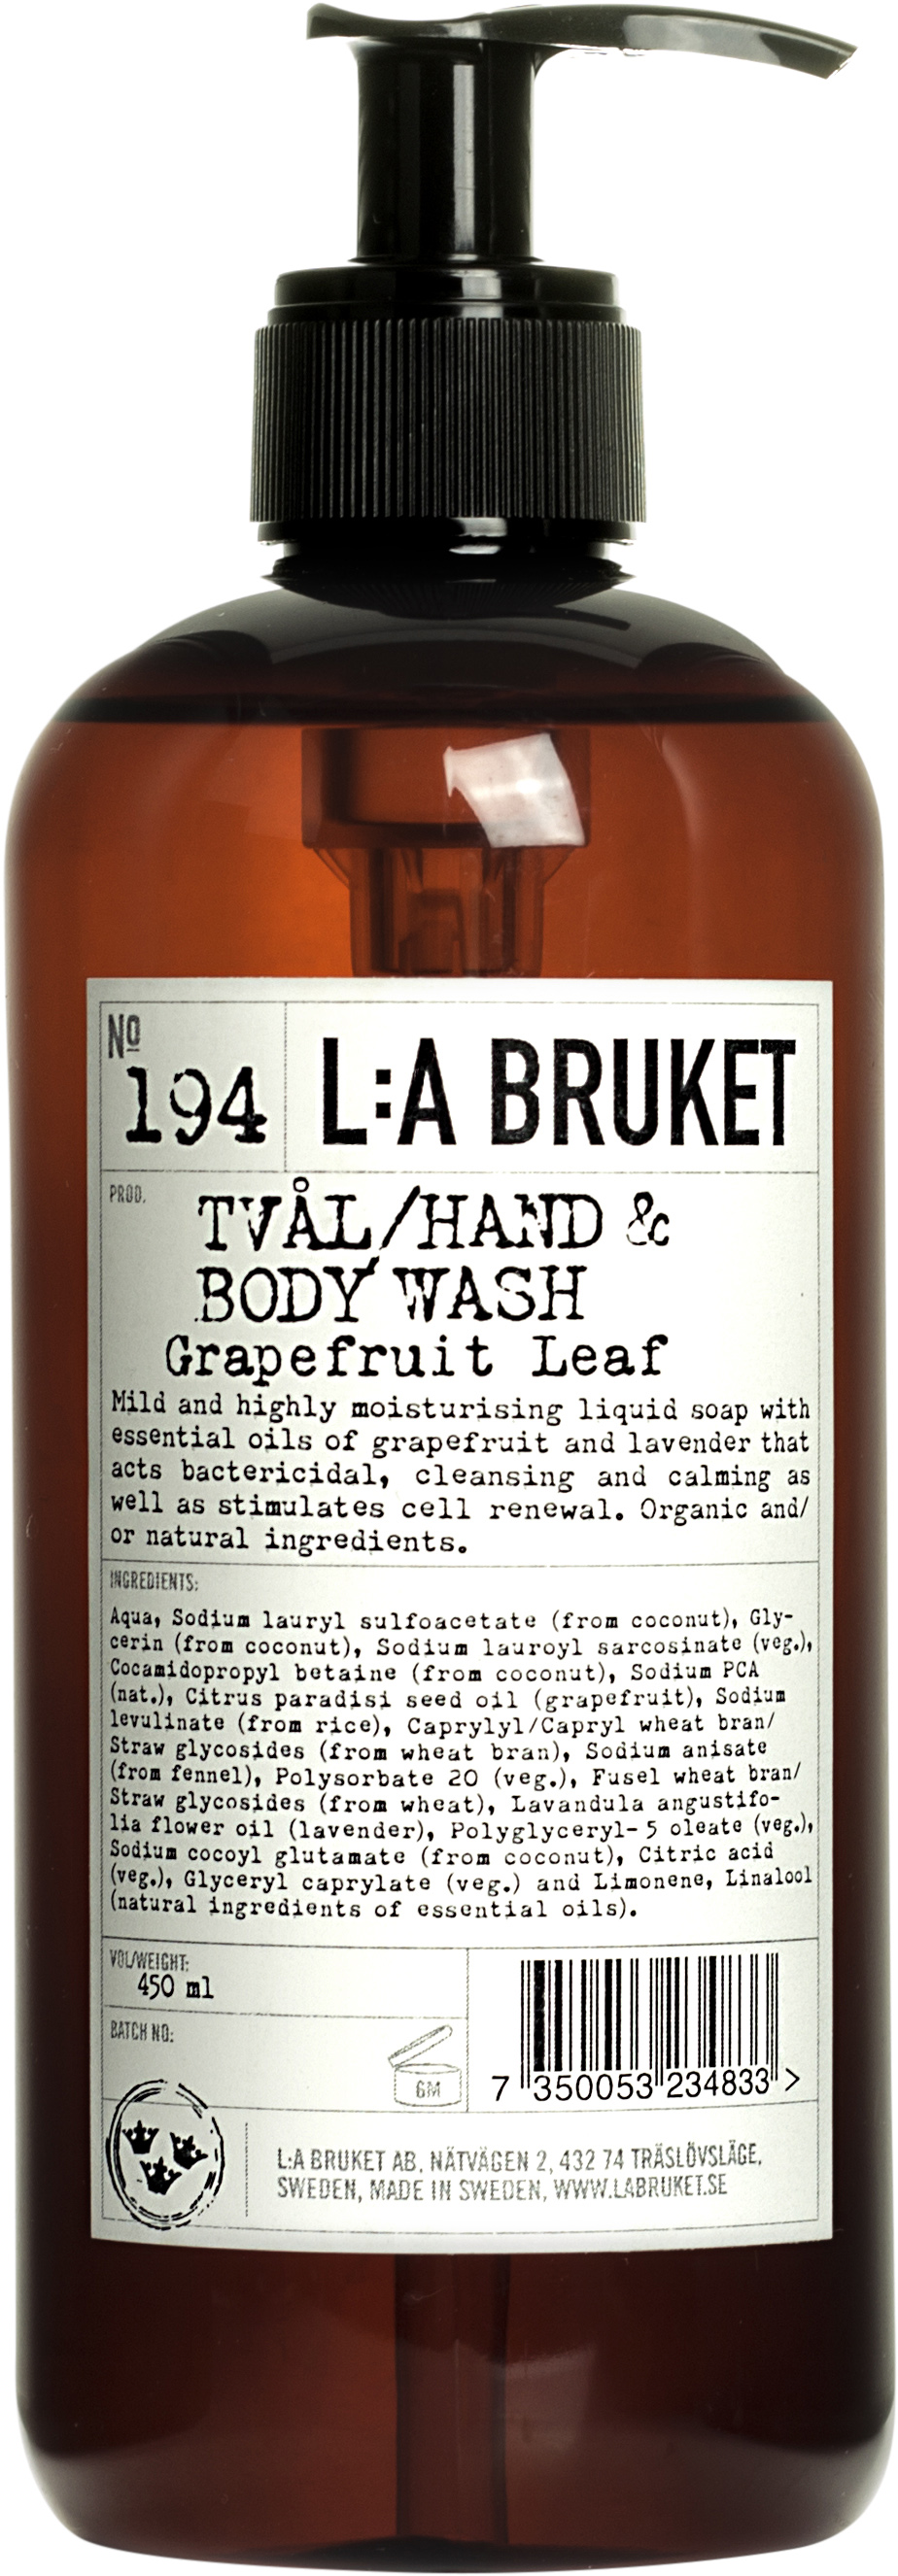 l:a bruket grapefruit hand & body wash